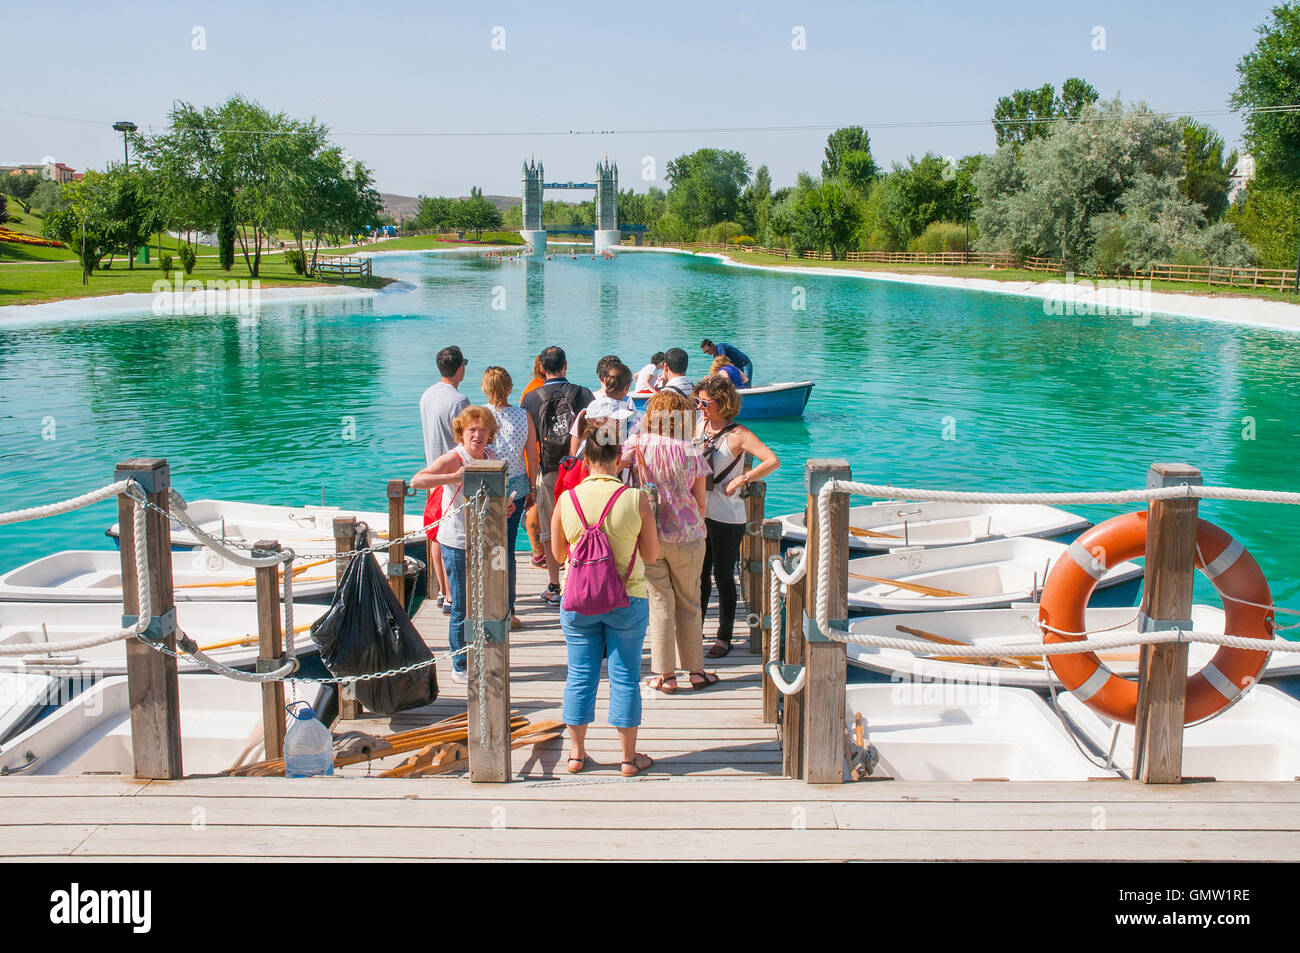 Group of people at the jetty. Parque Europa, Torrejon de Ardoz, Madrid province, Spain. - Stock Image